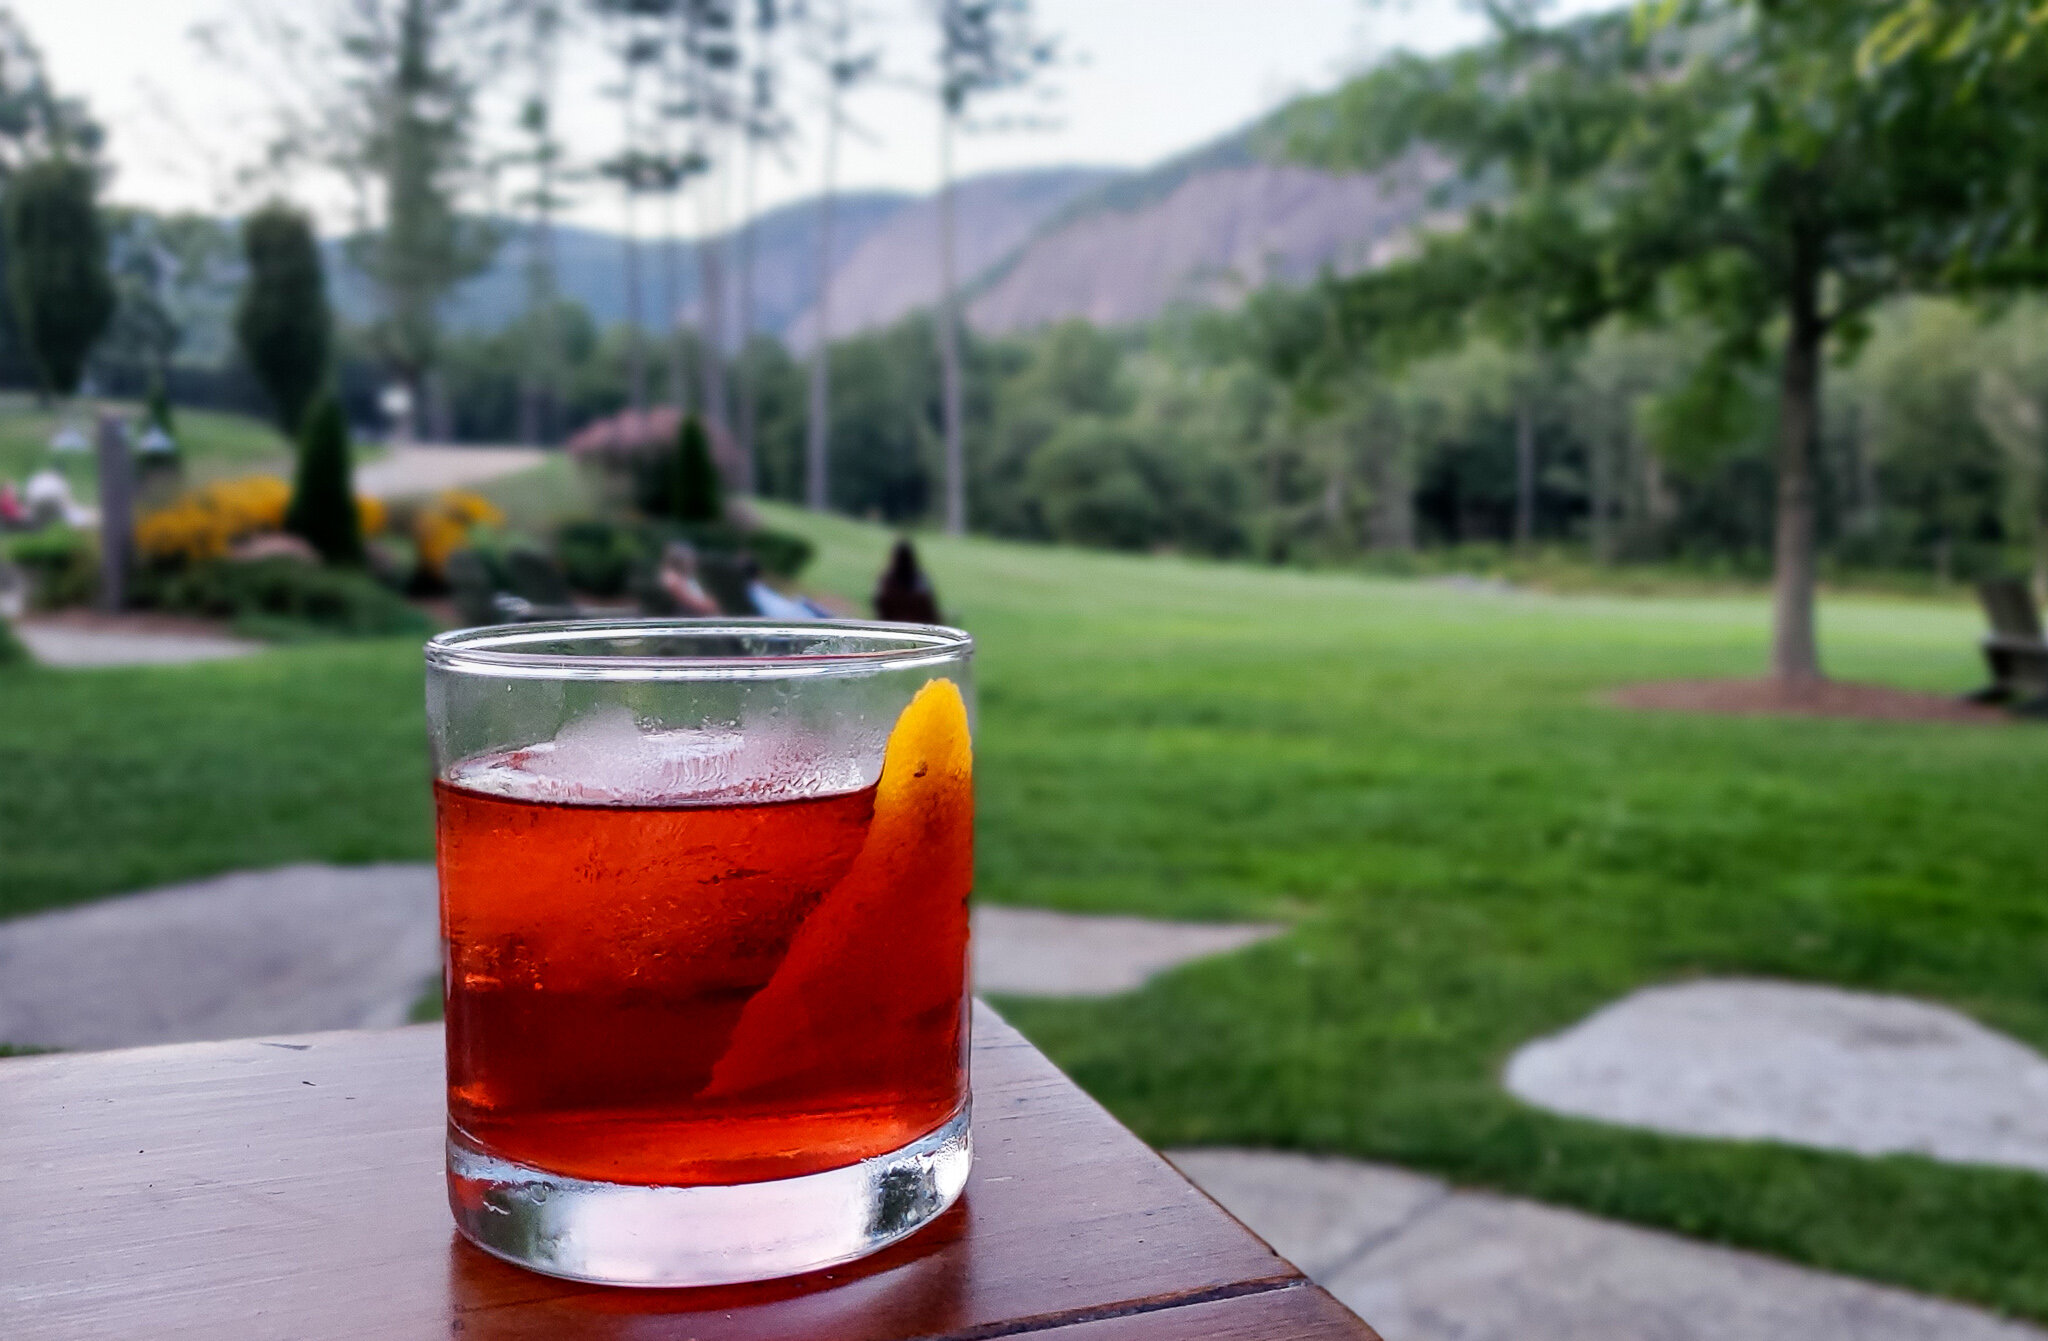 Cocktails with mountain views at Canyon Kitchen in Cashiers (c) Anna Lanfreschi